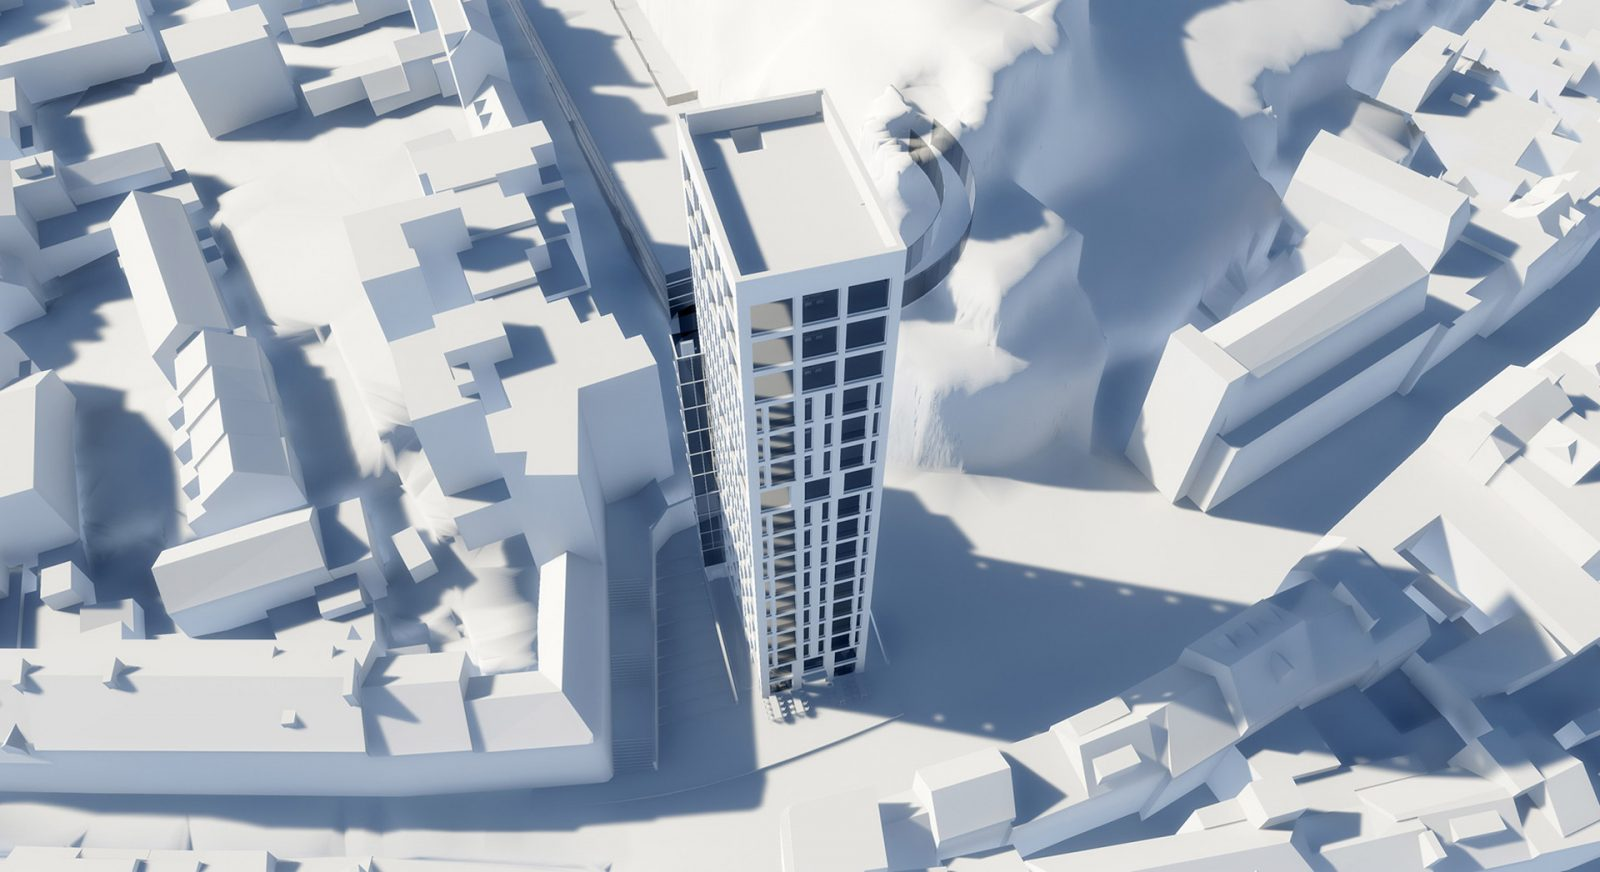 FT snow hill tower st helier apartment building architecture architects jersey architects11